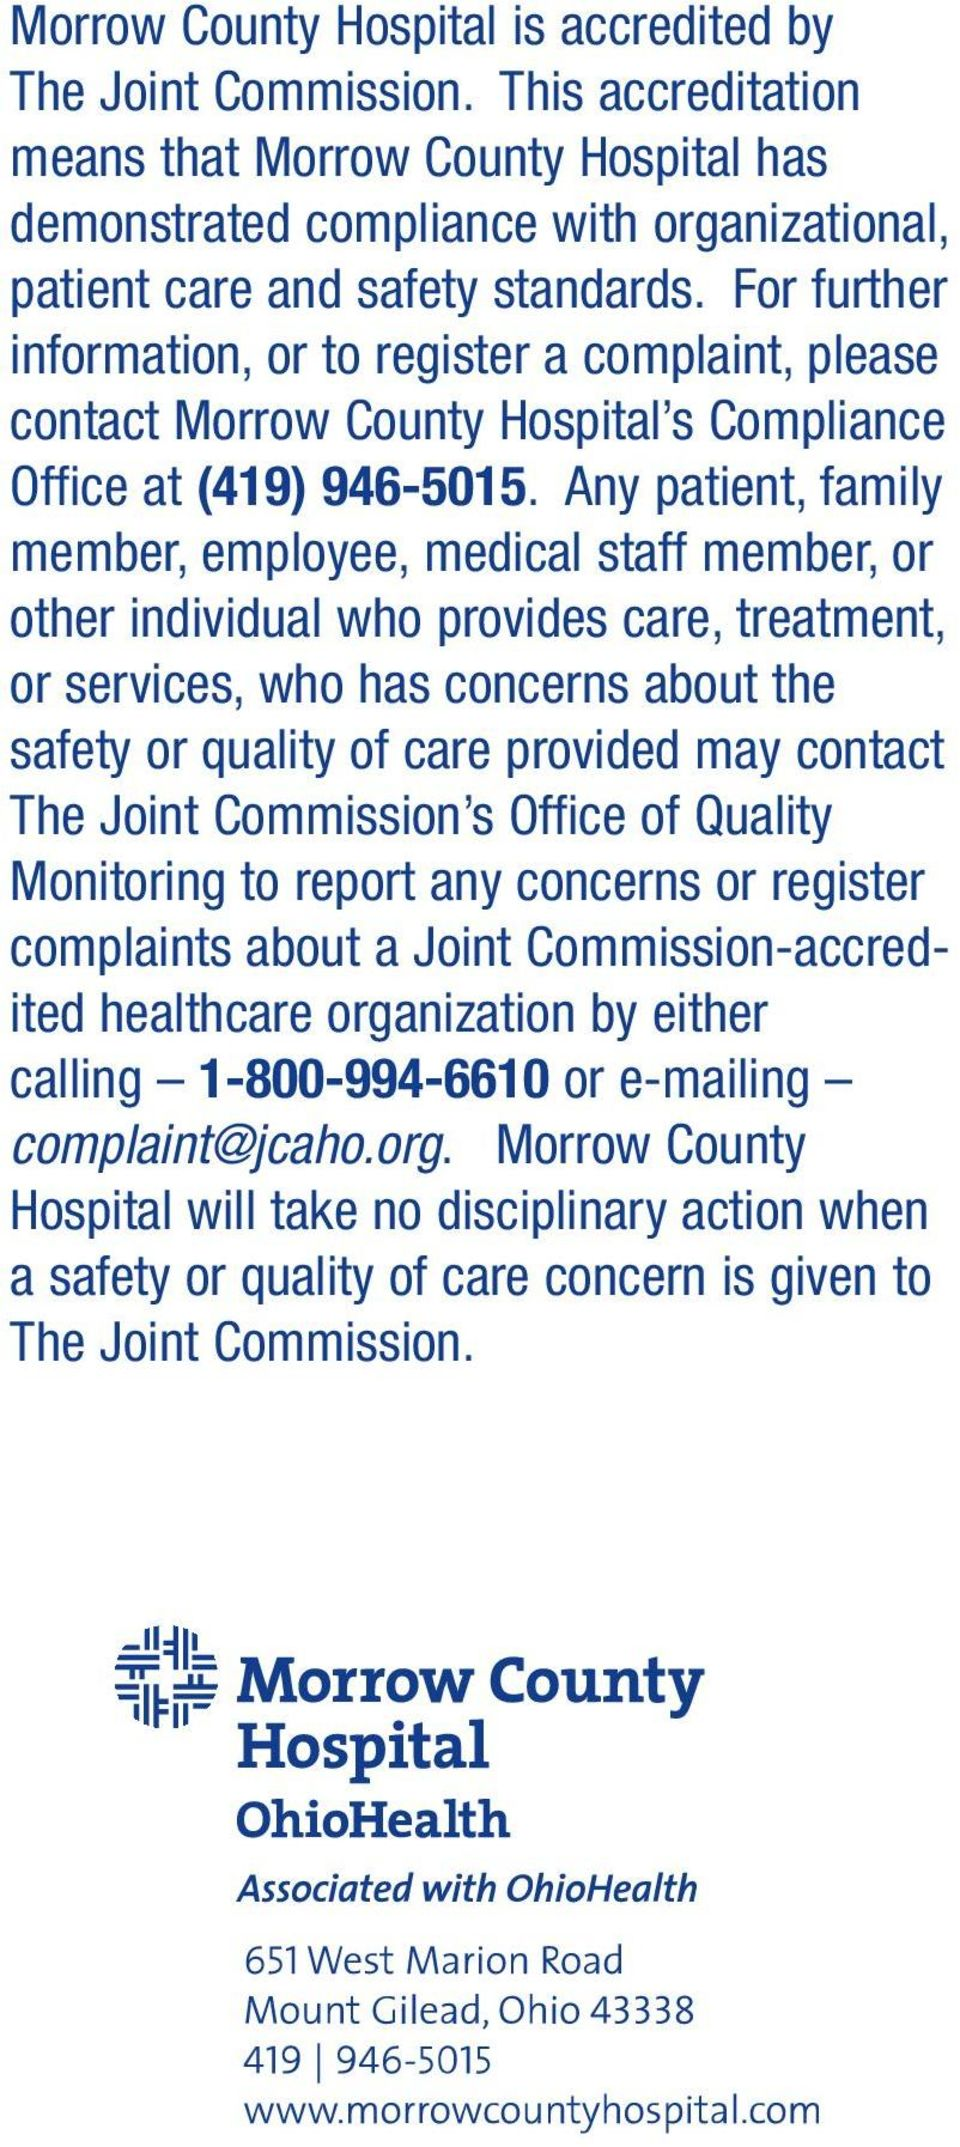 Any patient, family member, employee, medical staff member, or other individual who provides care, treatment, or services, who has concerns about the safety or quality of care provided may contact